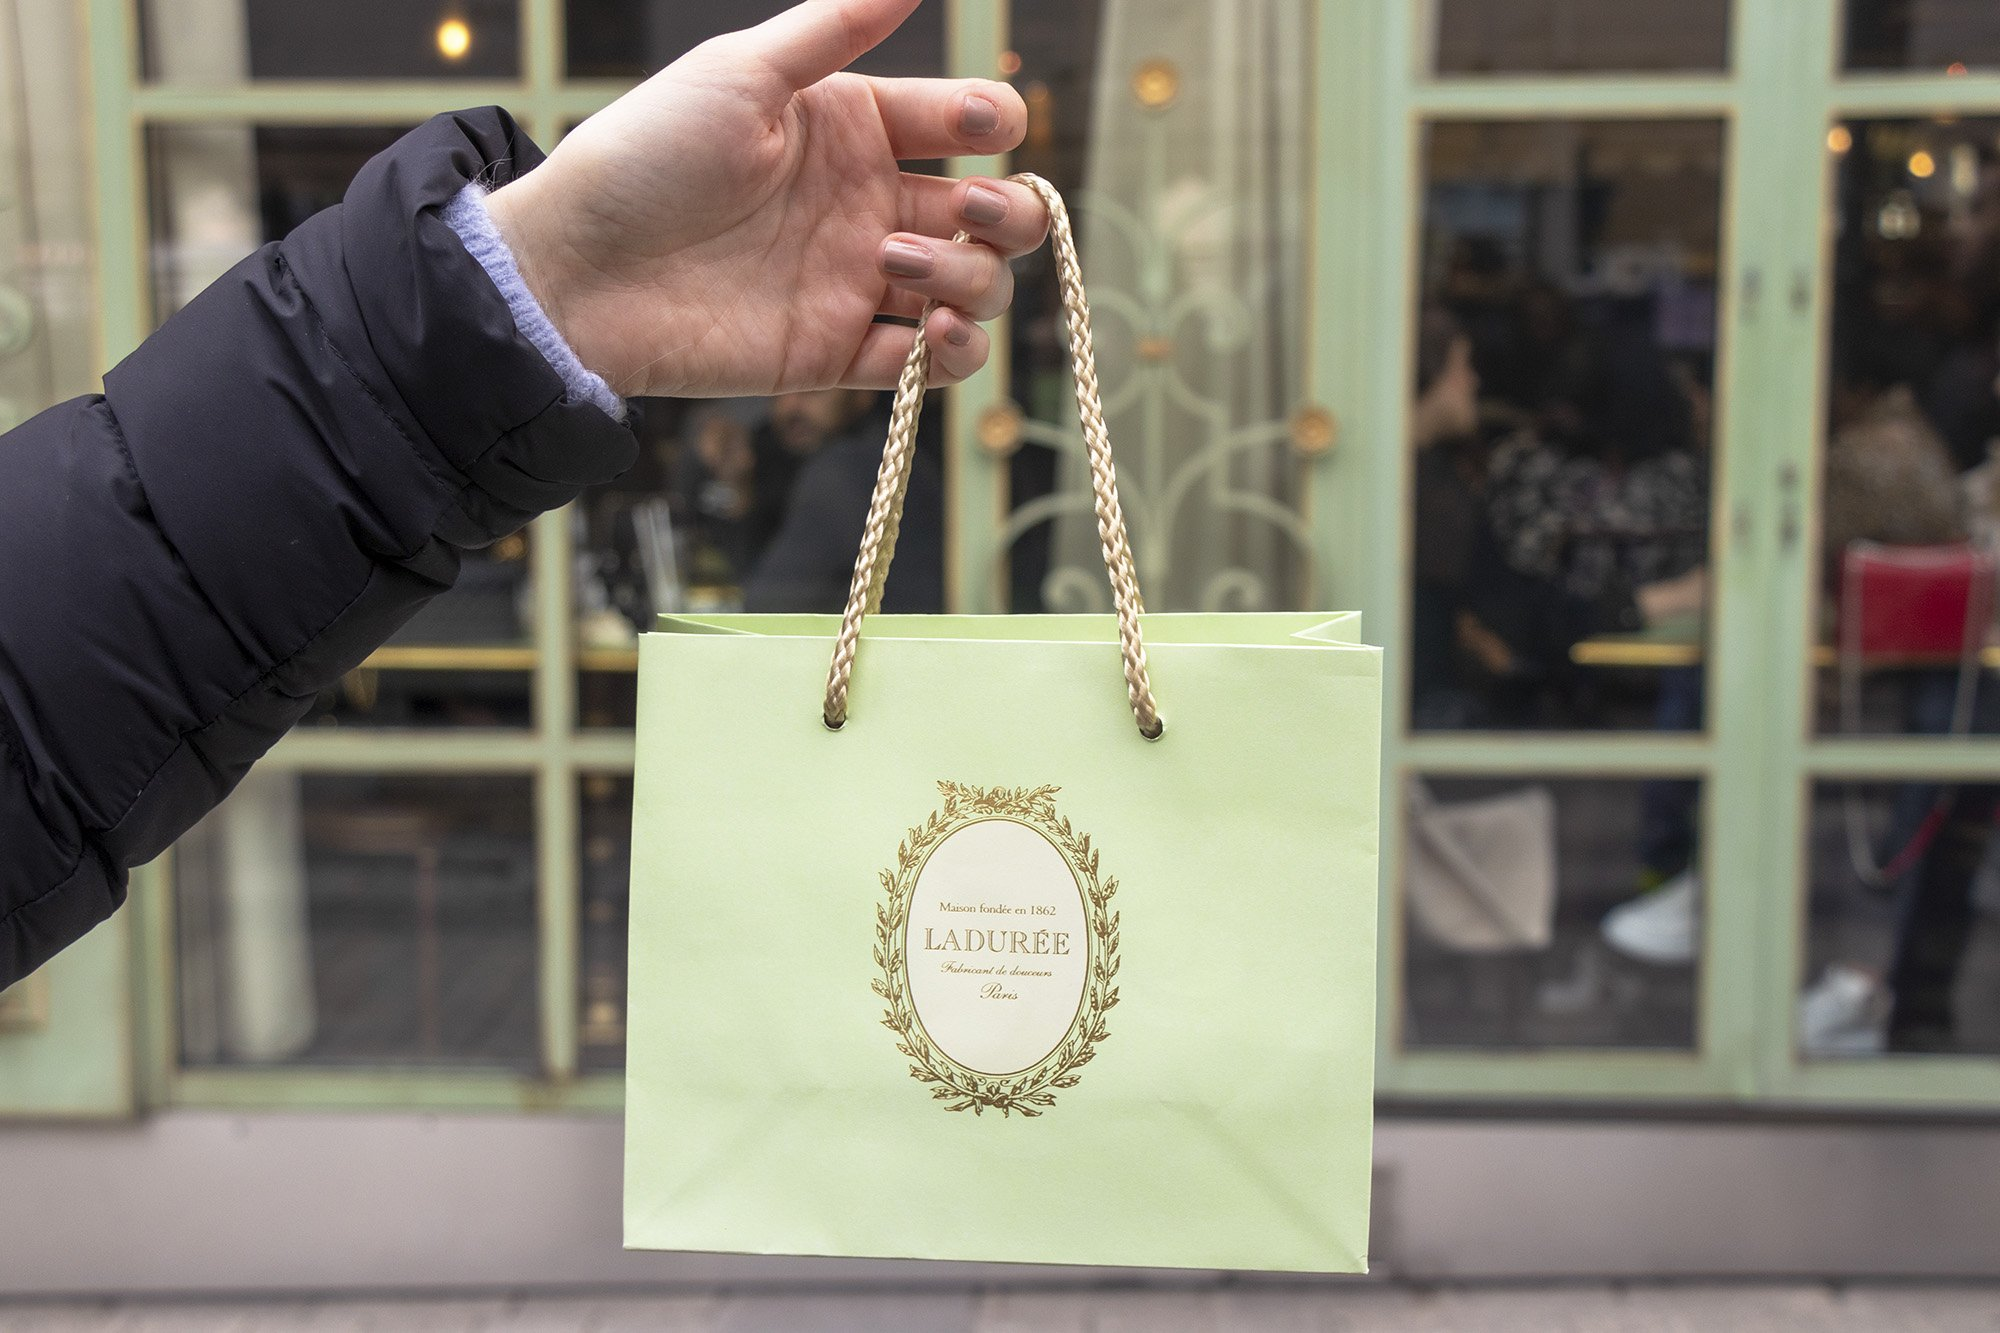 Laduree bag